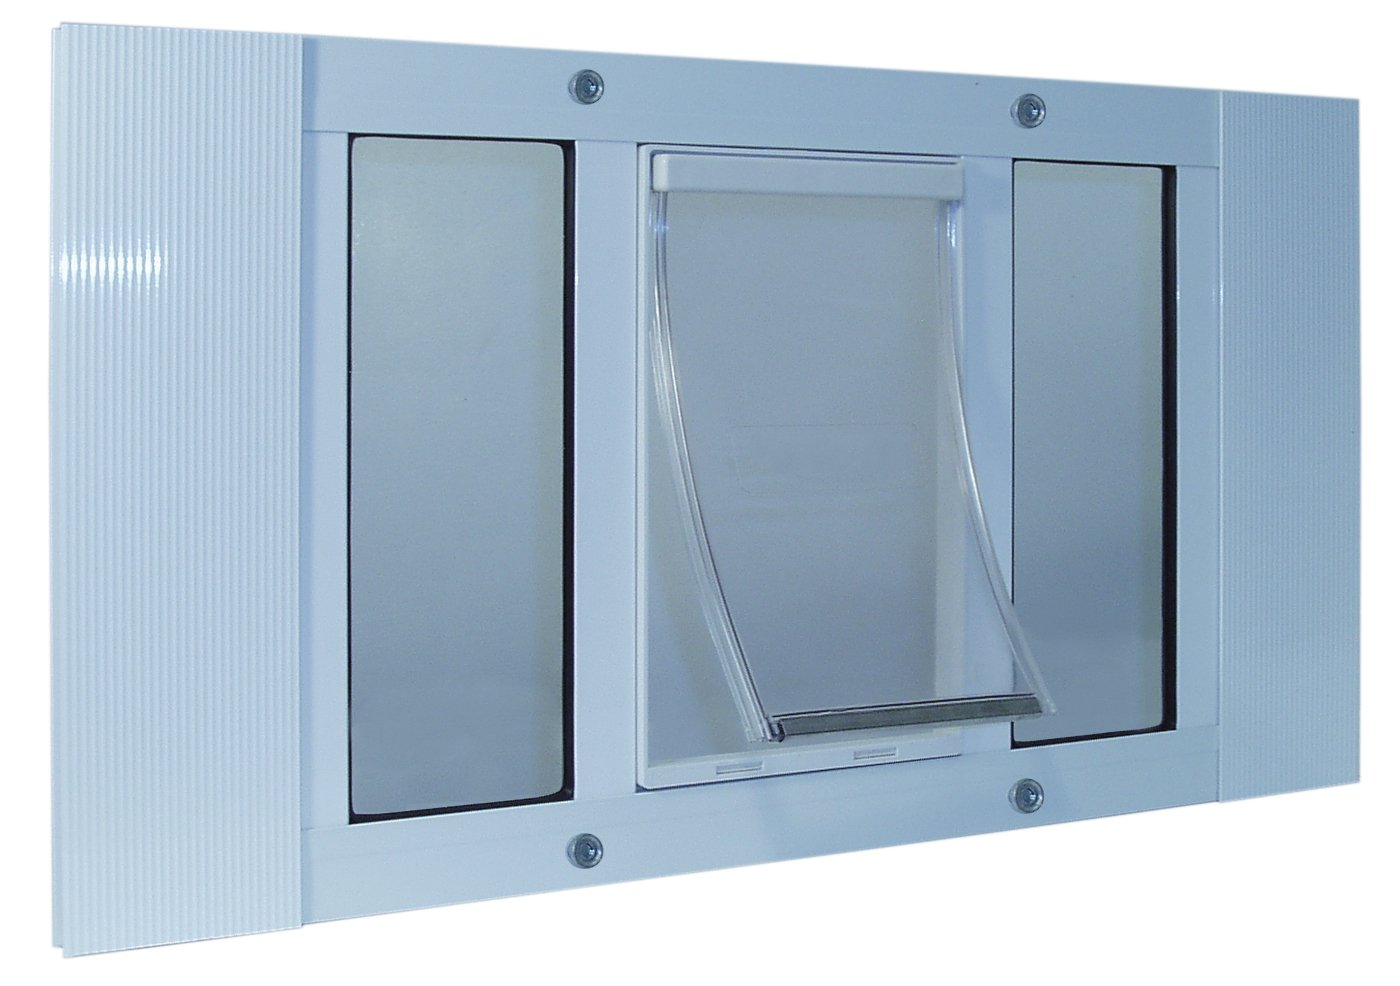 27'' to 32'' Wide Window Sash Pet Door with an Xlg Flap 10.5'' X 15''